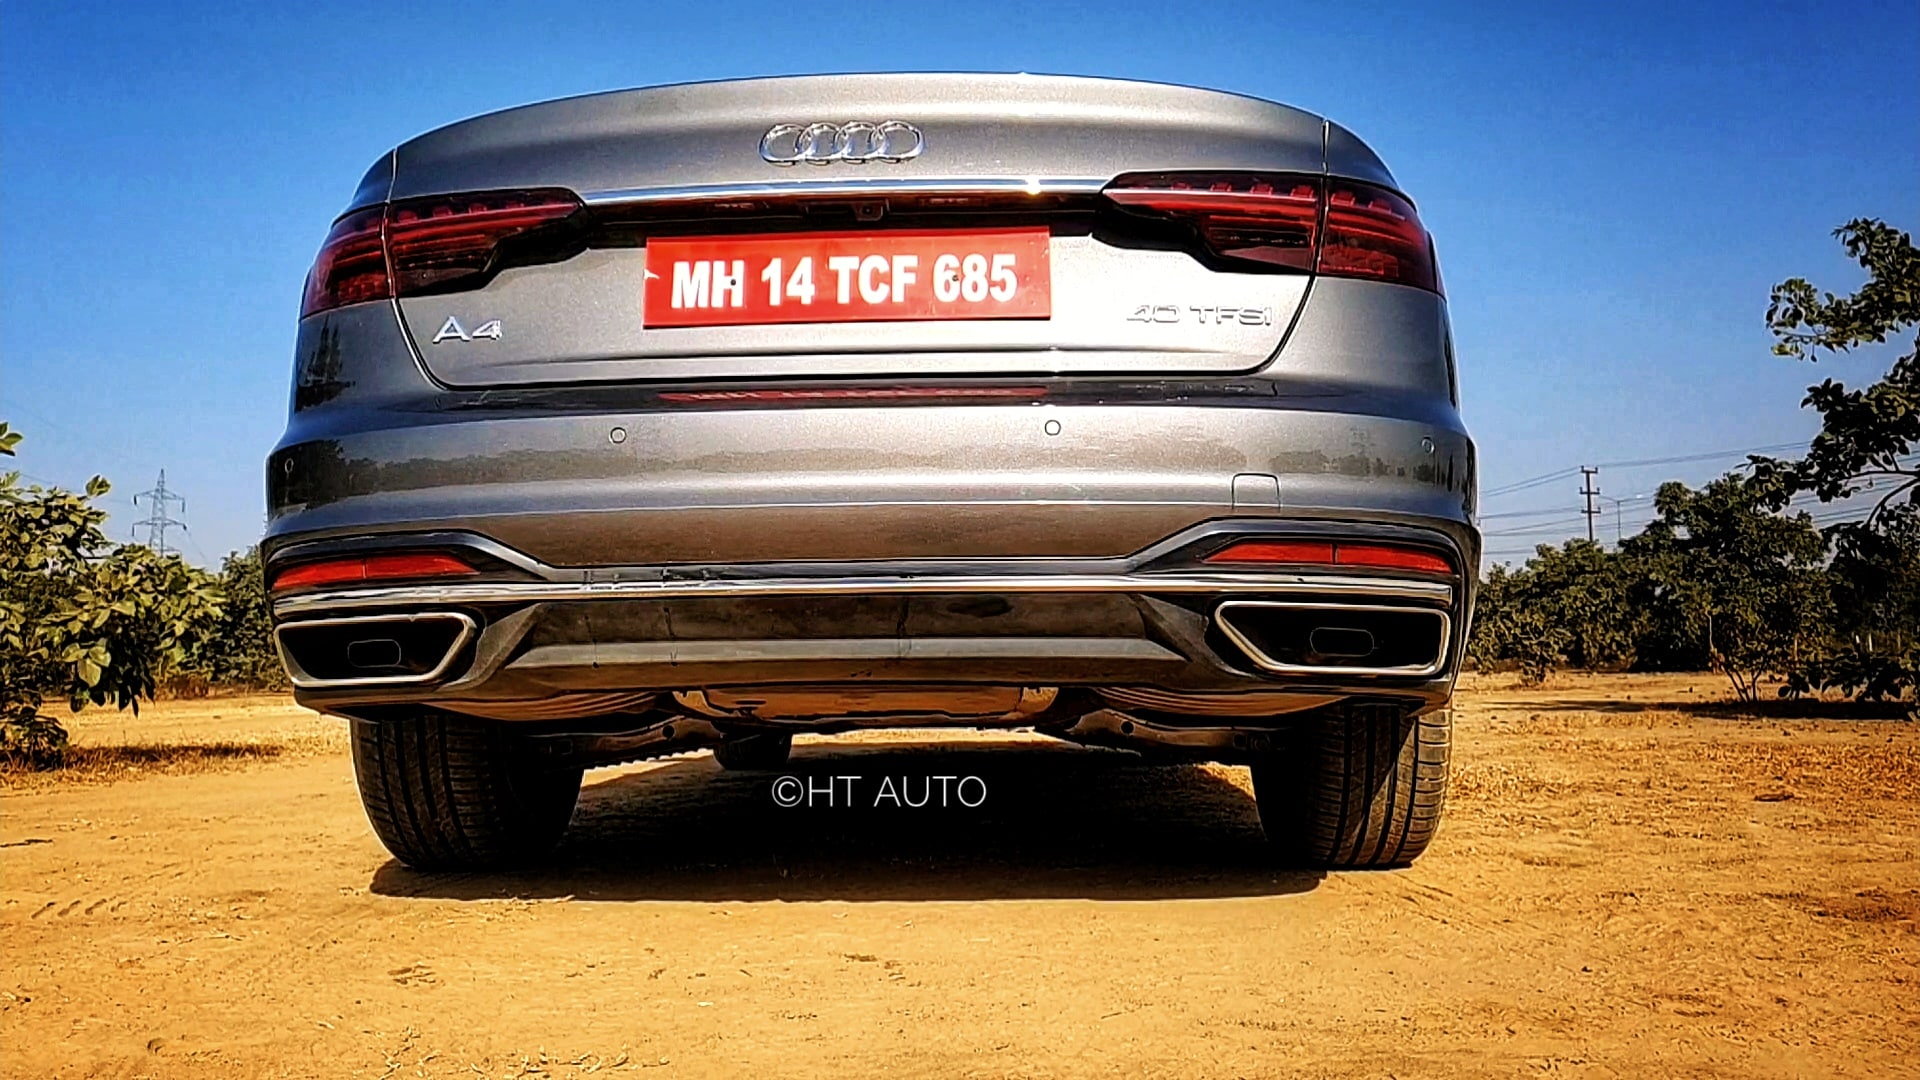 The sedan sits on 17-inch alloy wheels and the look is completed at the rear with a clean profile and starry LED tail lights.